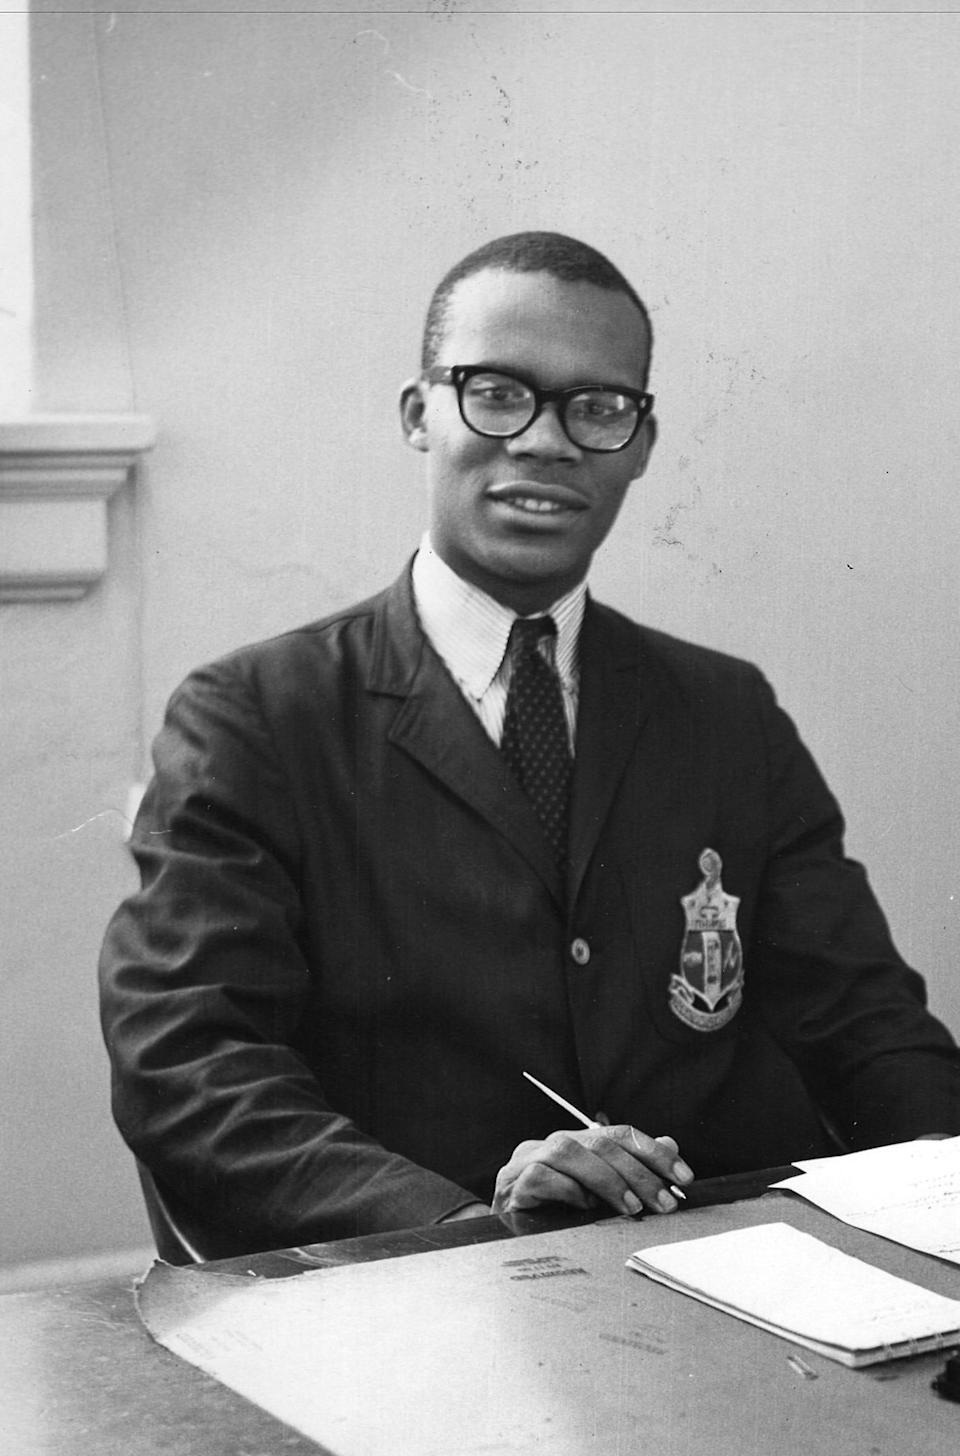 Larry Gibson as a student at Howard University. Gibson was a Howard University sophomore when he and his classmates participated in the November 1961 sit-ins being conducted throughout Anne Arundel County as part of the Route 40 desegregation campaign in Maryland. Two years later, he would be Howard's student body president.